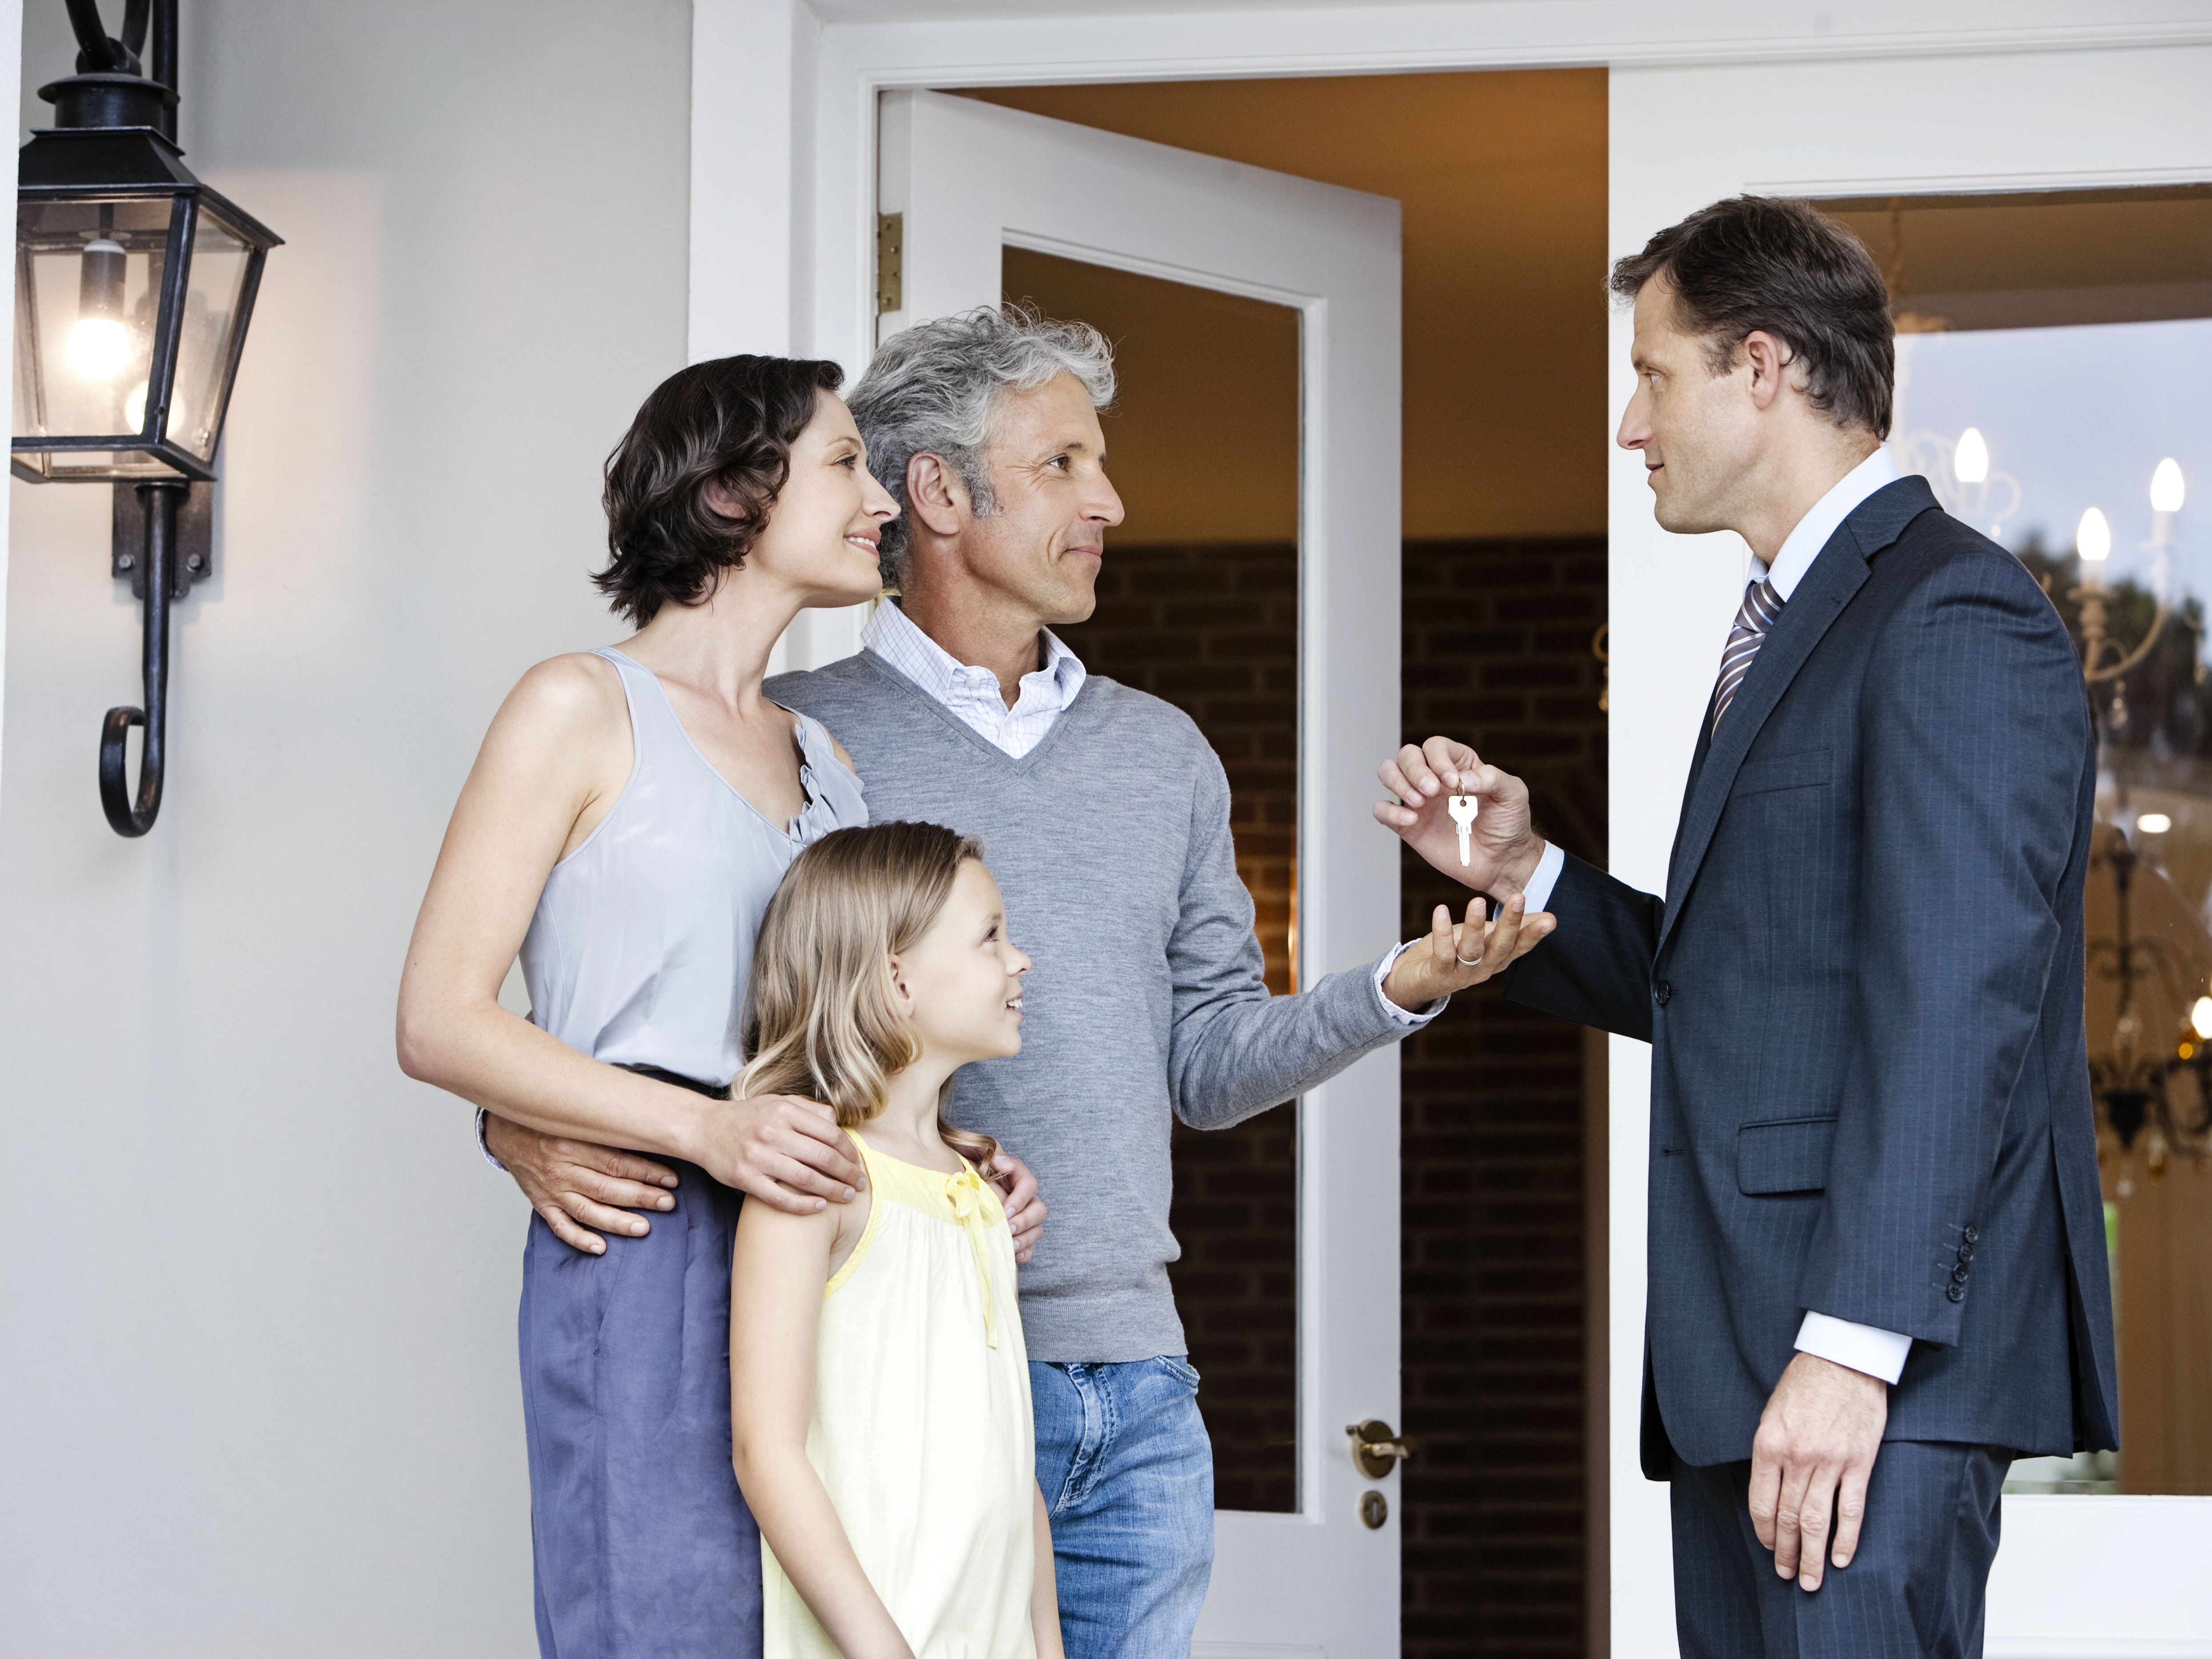 Do You Need To Work With A Real Estate Agent